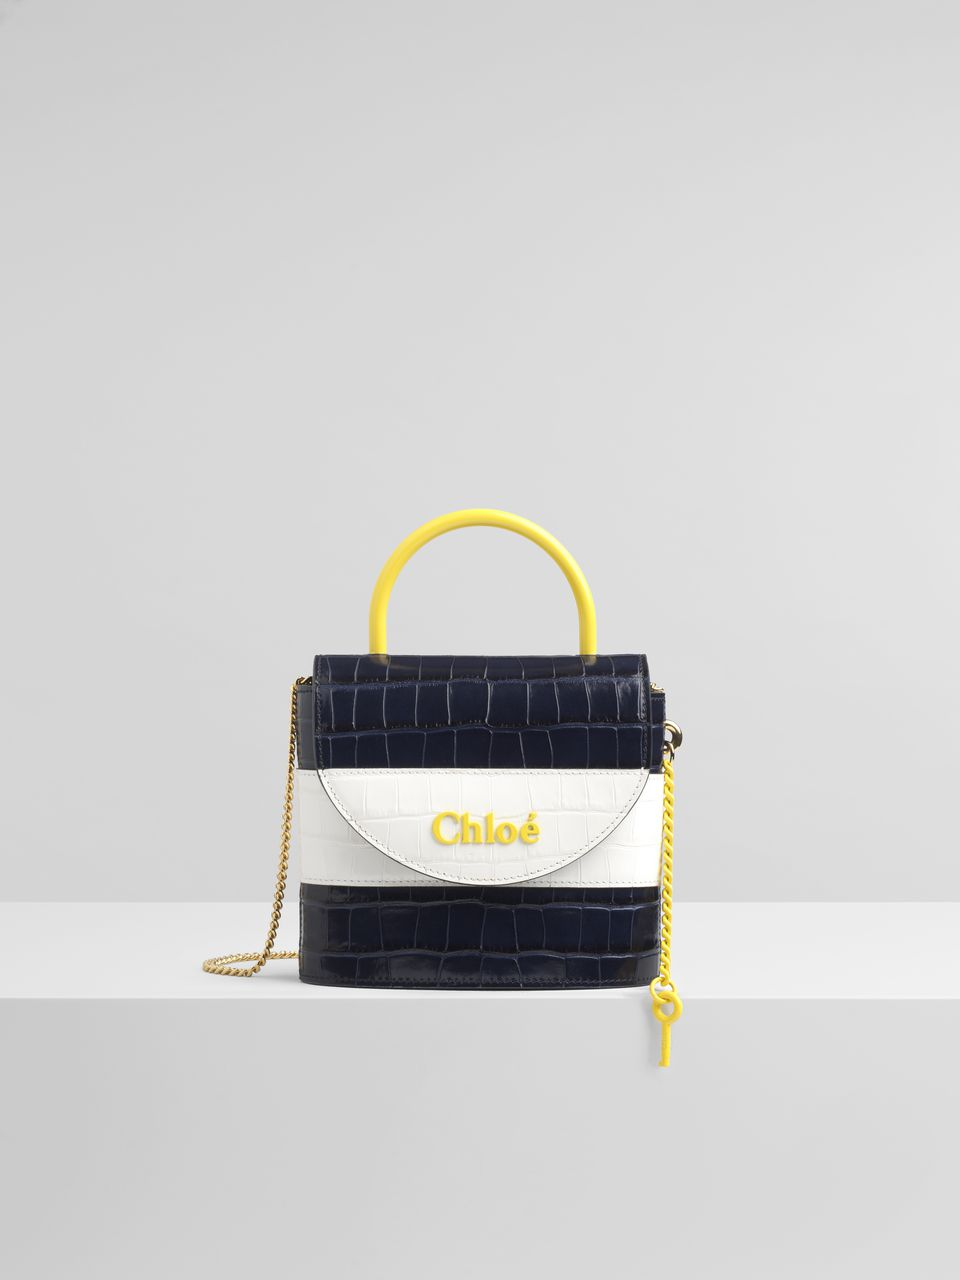 CHLOE - Small Aby Lock Chain Bag